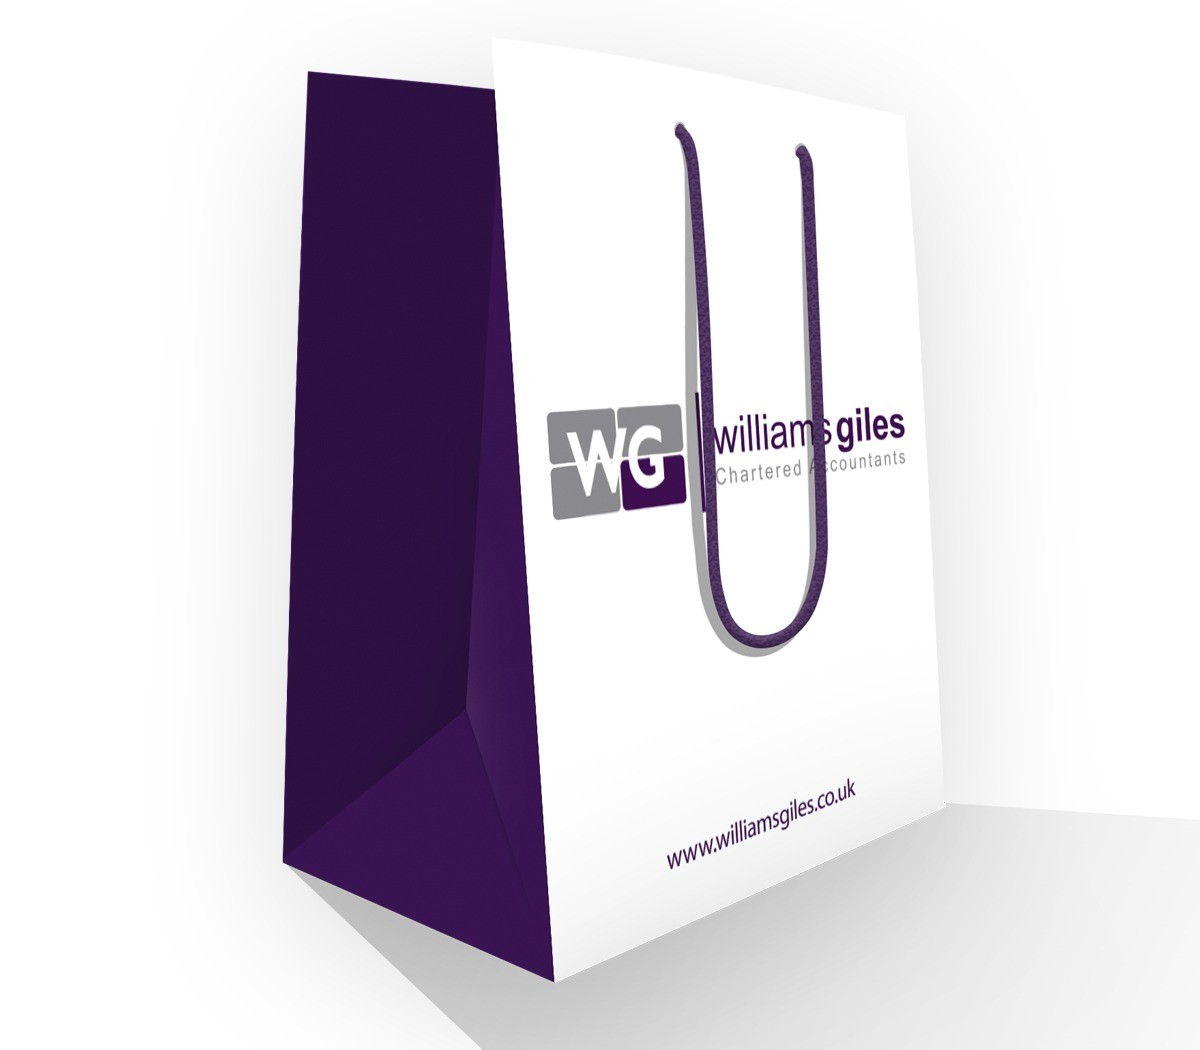 An illustration of a bag designed for Williams Giles and used at exhibitions. It is white on the front and back with purple sides and handles. The Williams Giles logo is shown on the front and back.